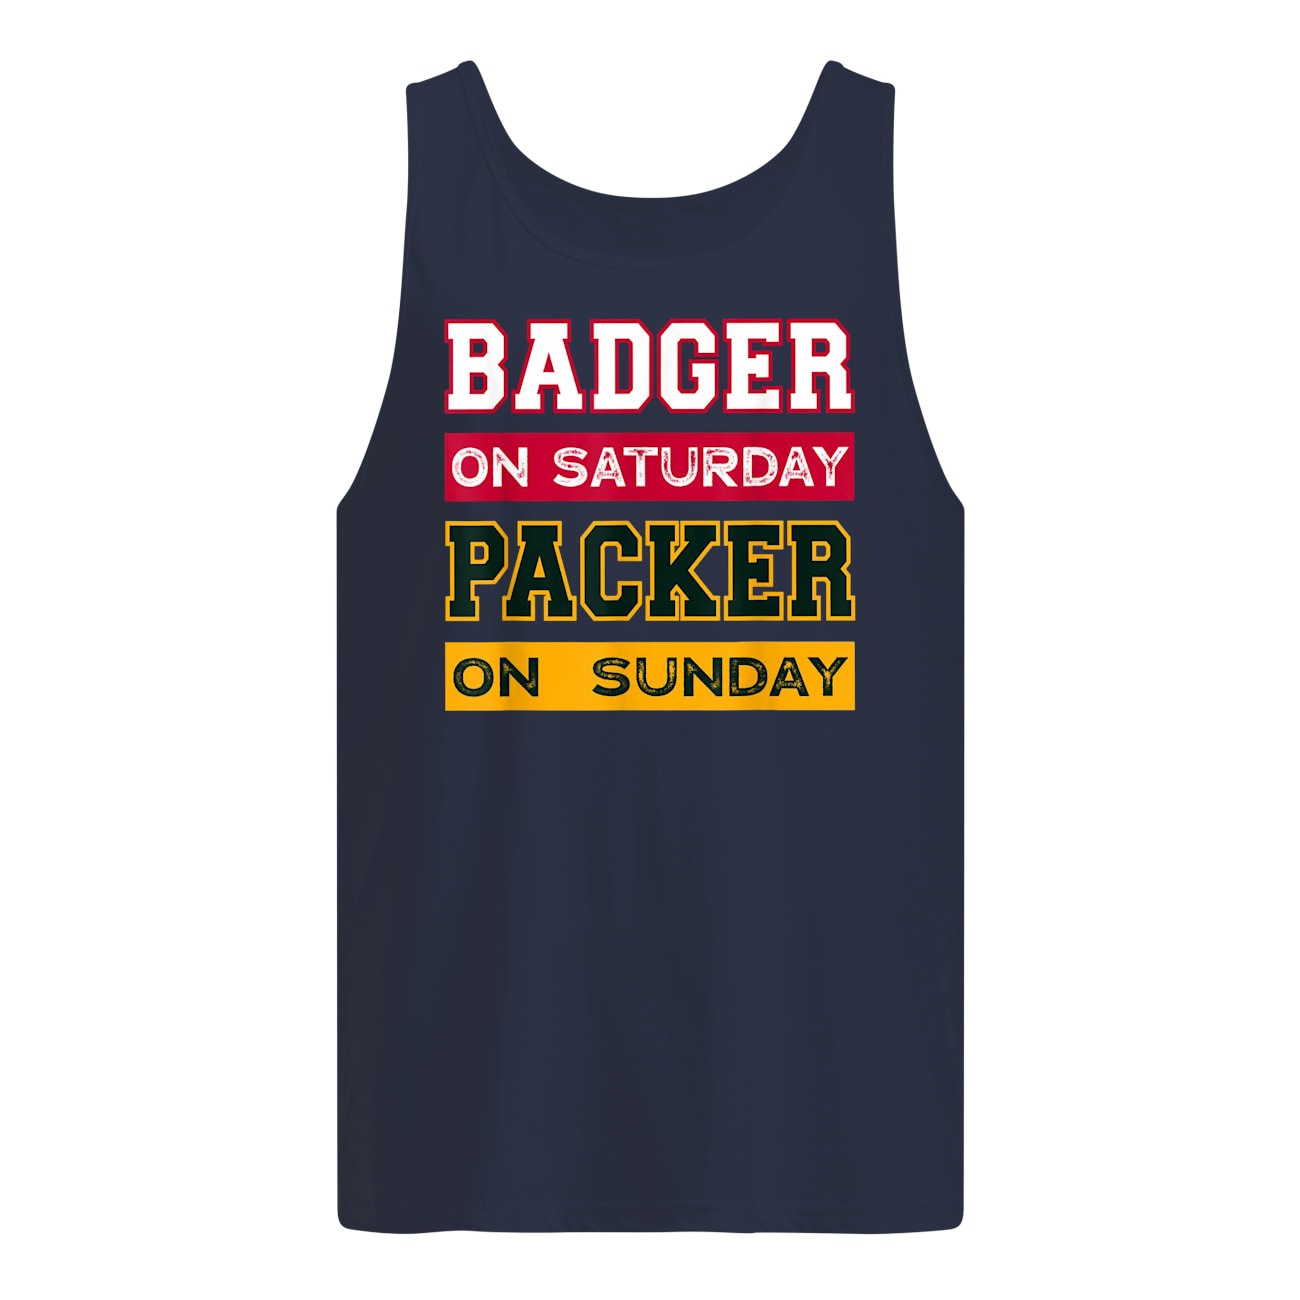 Badger on saturday packer on sunday green bay packers tank top